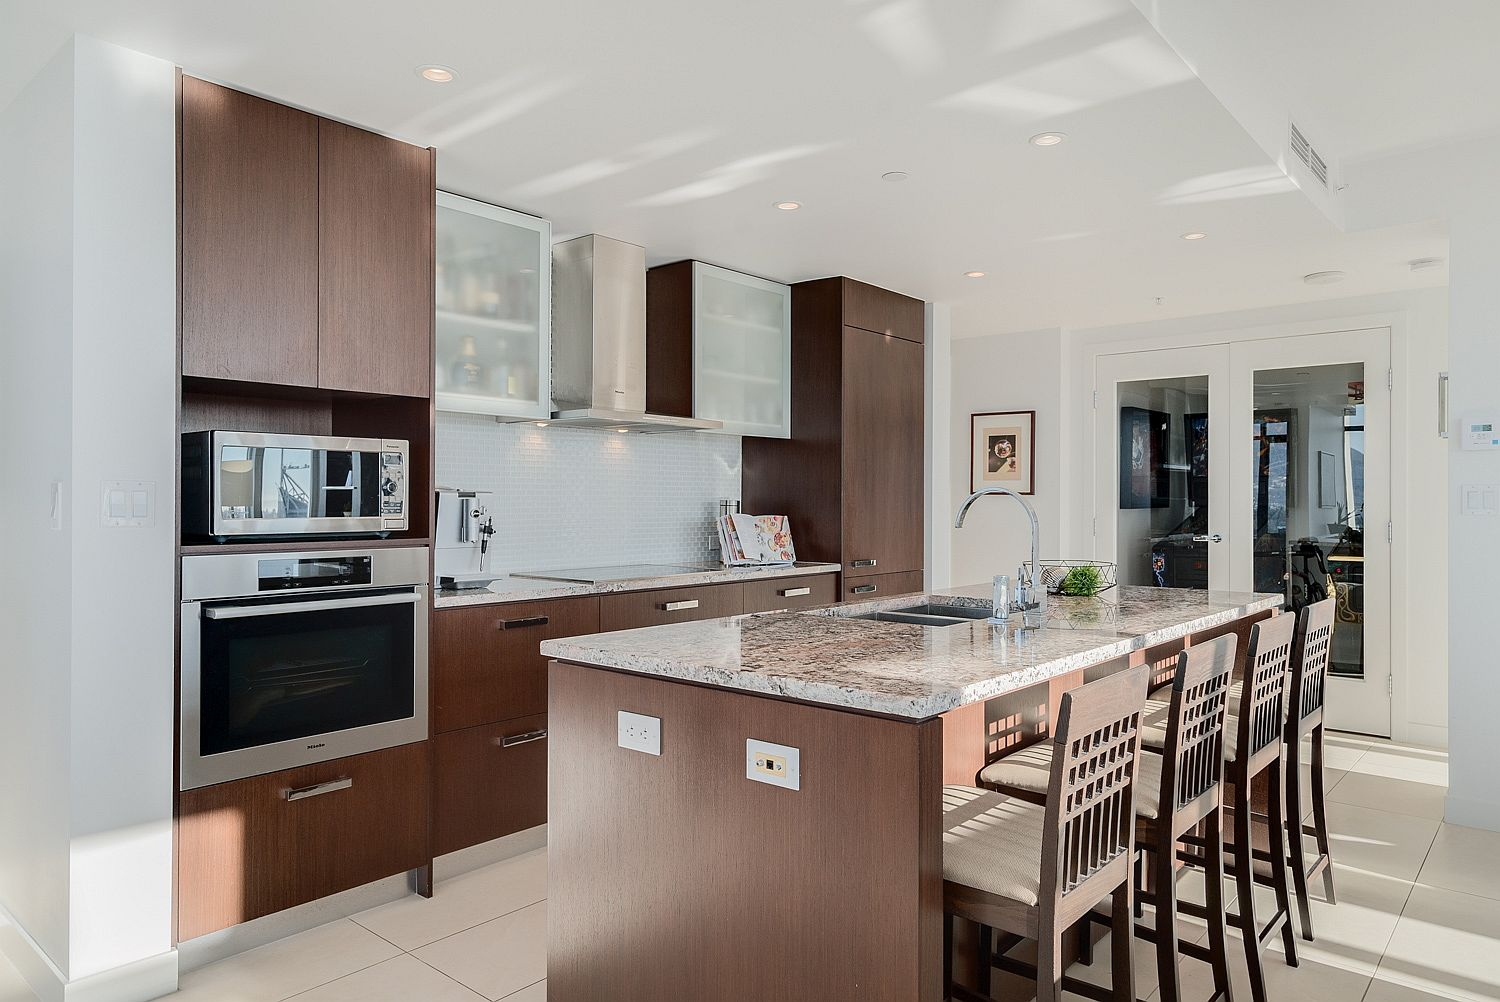 Modern kitchen with smart shelving, state-of-the-art appliances and space-savvy design